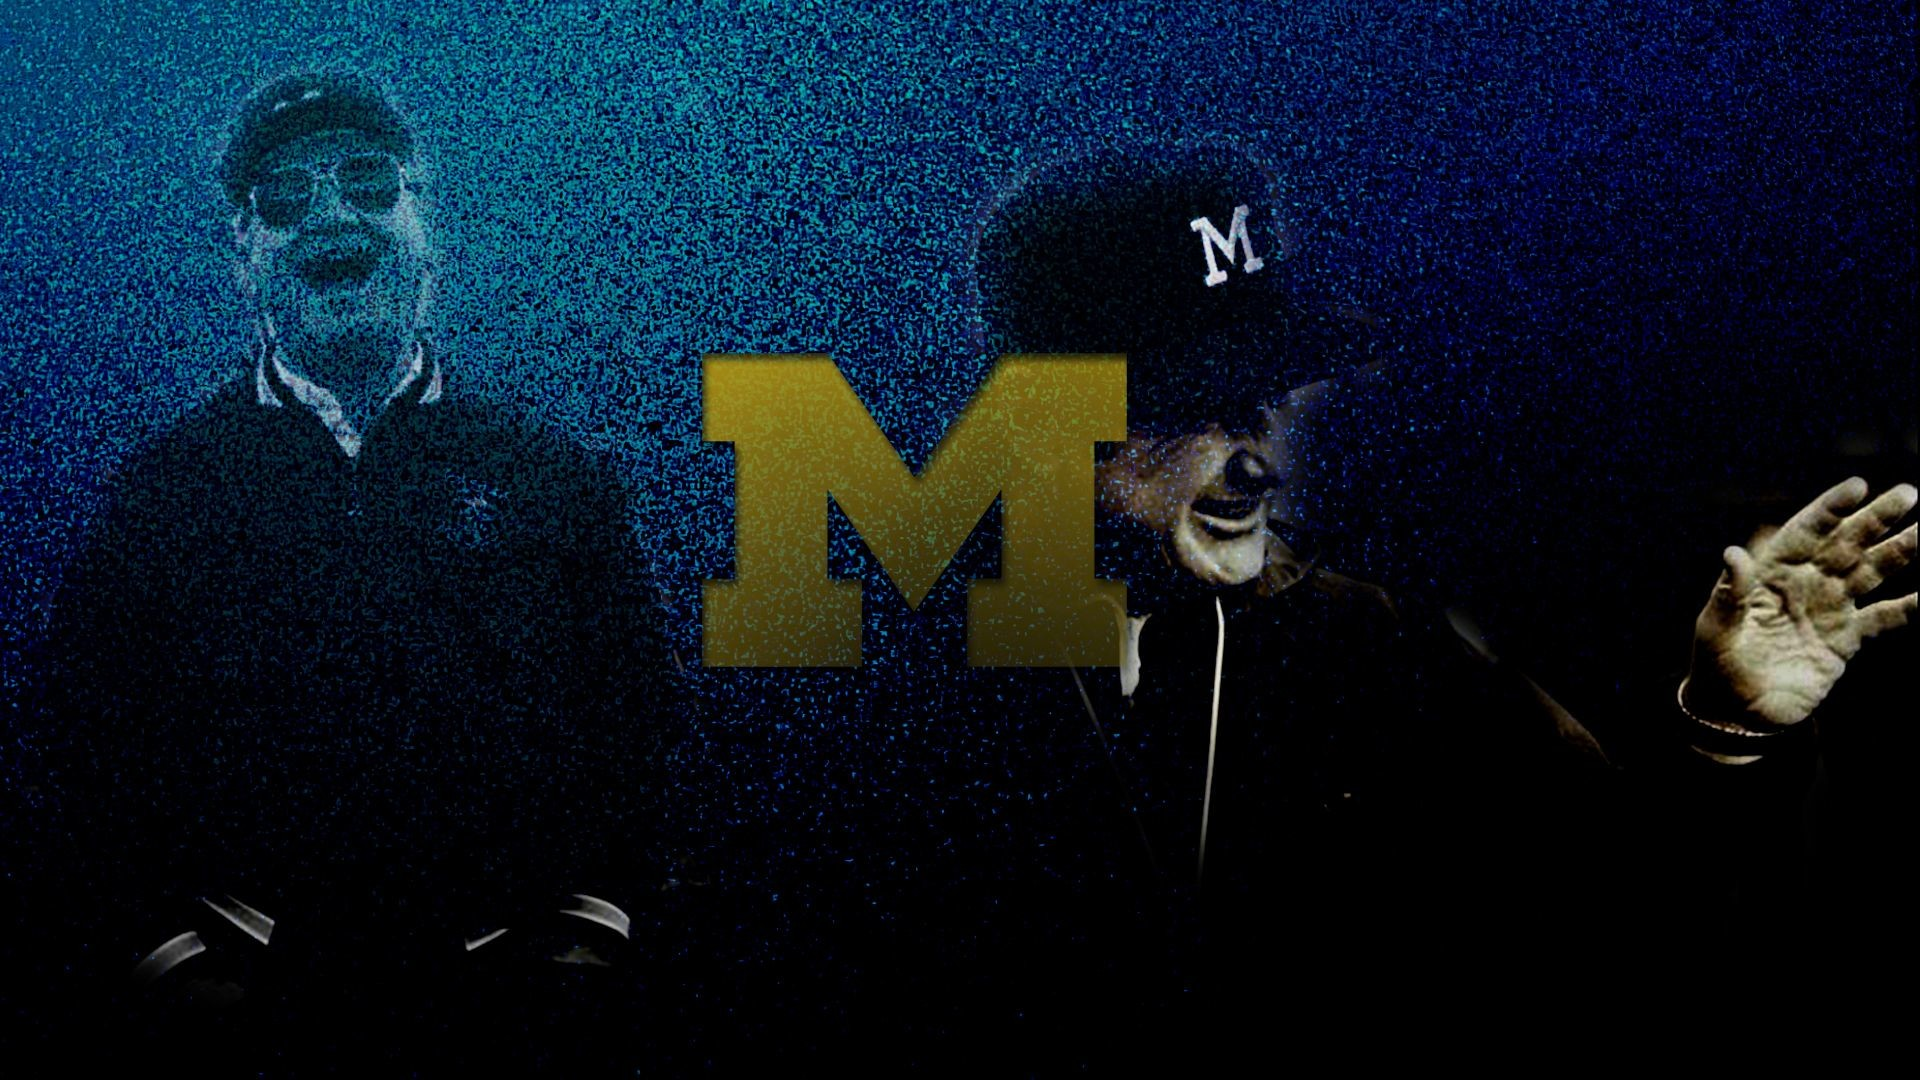 1920x1080 Michigan Wolverines Football Wallpaper